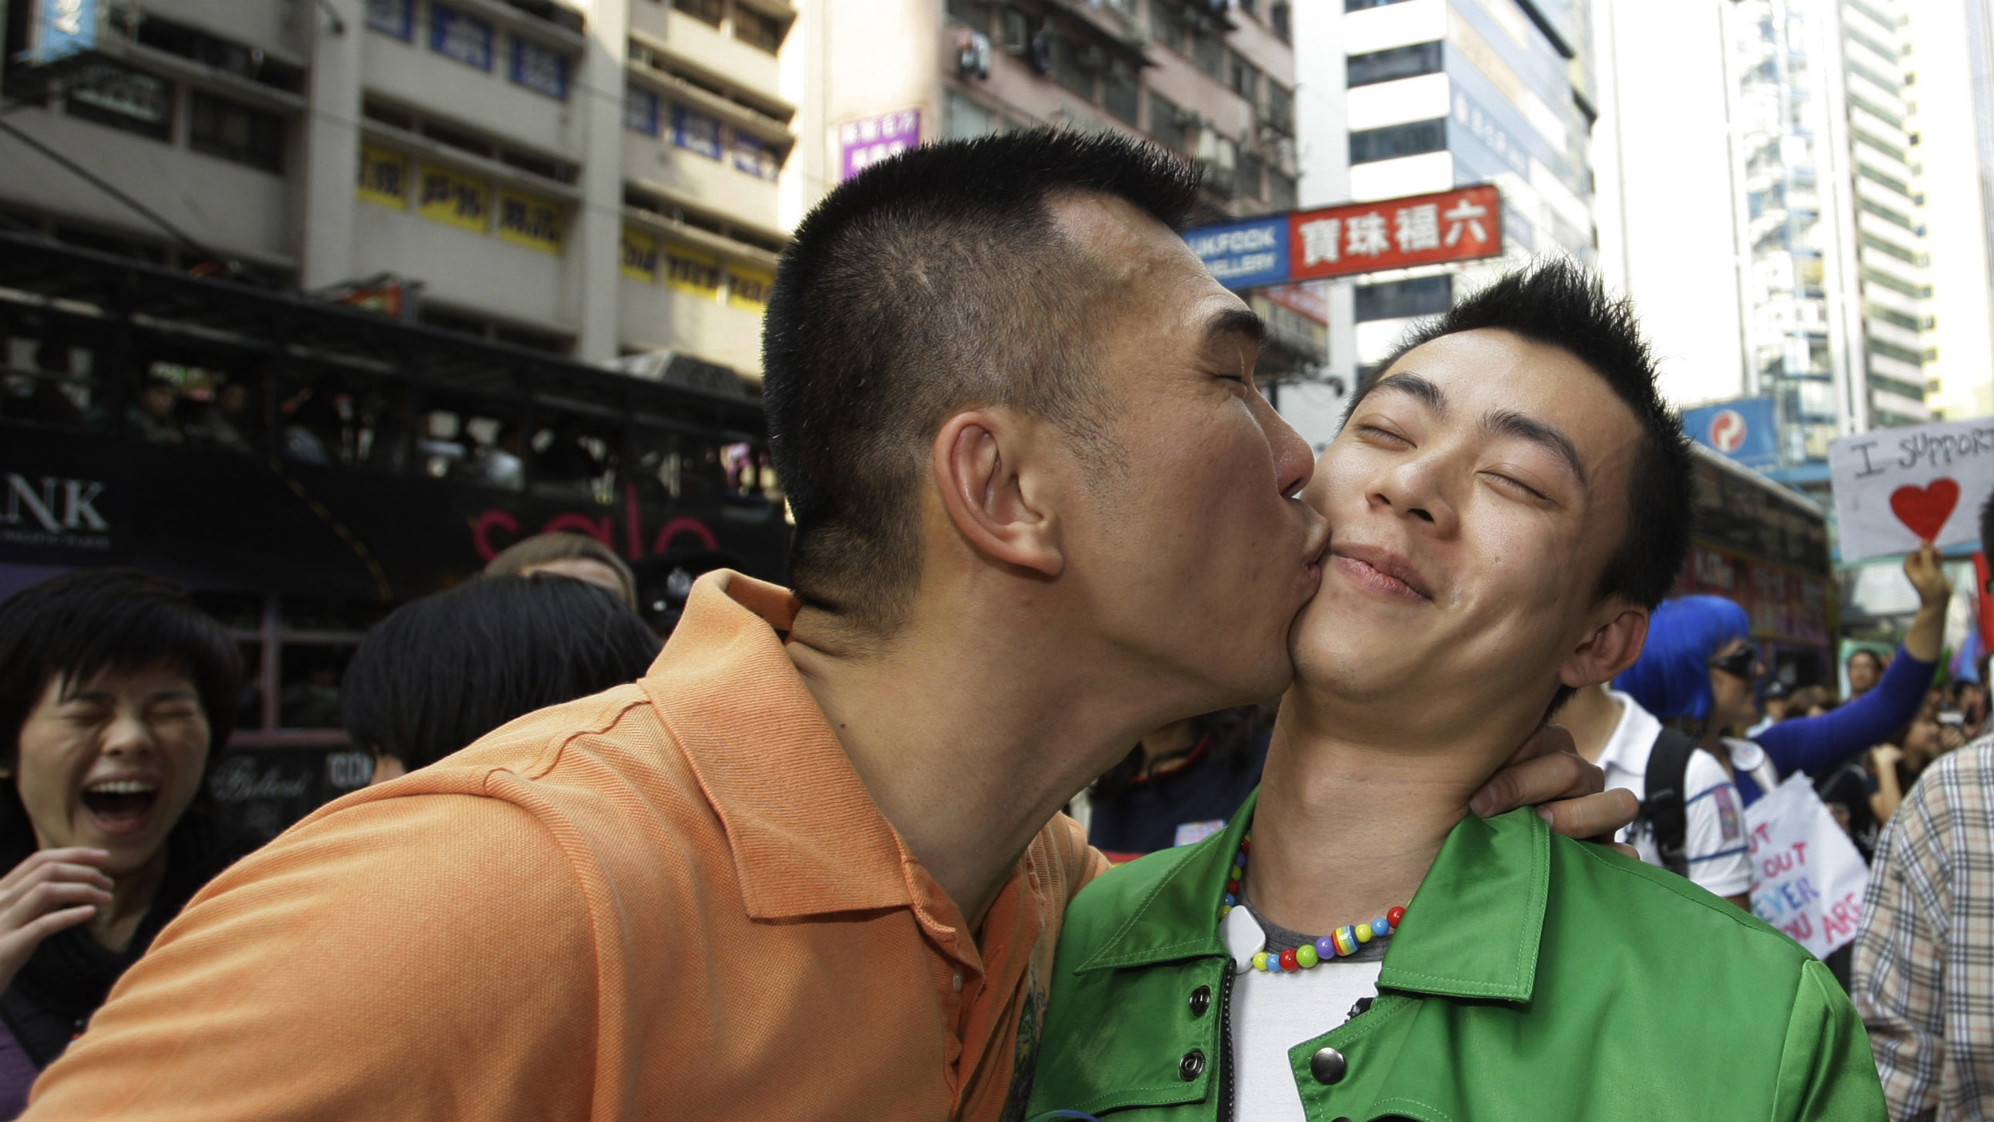 Gay participants, Wesley Poon, left, kisses his friend Tim Lee of Hong Kong during a gay rally in Hong Kong Saturday, Dec. 13, 2008. Hundreds of gay supporters, from various lesbian, gay and bisexual transgender communities marched as fighting for their rights.